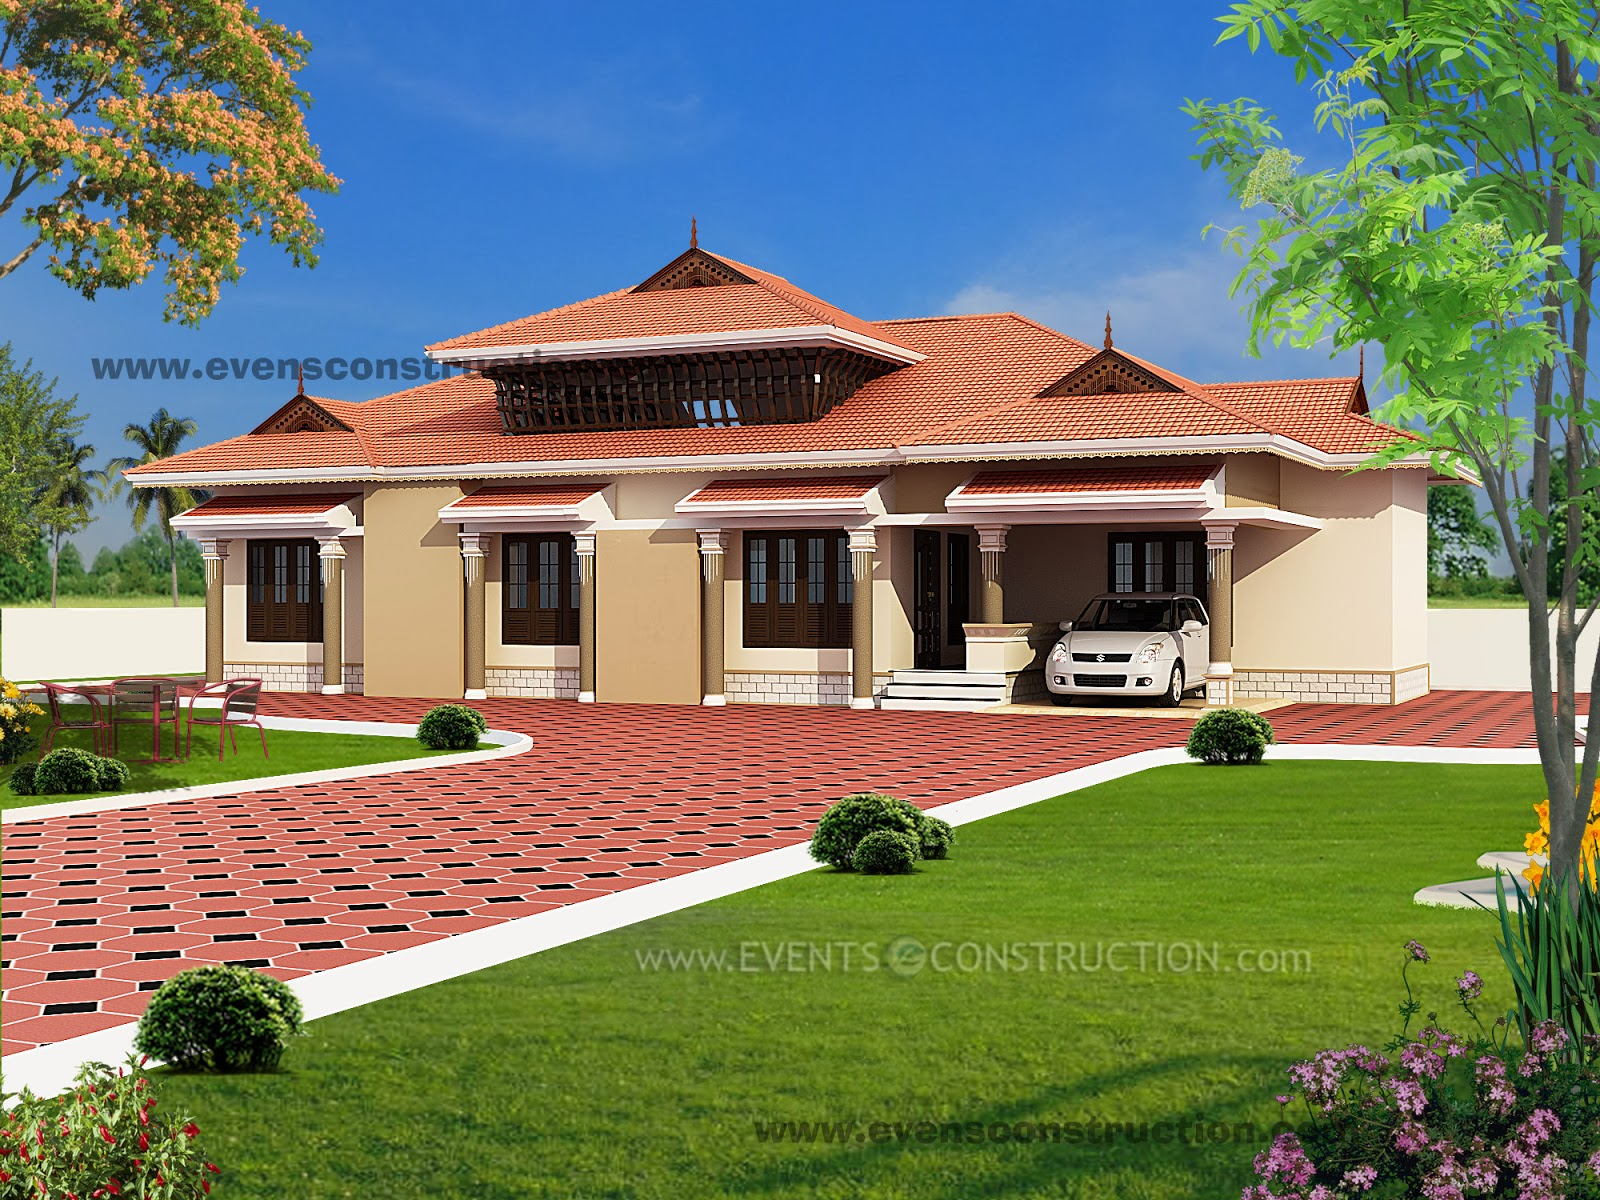 Evens construction pvt ltd traditional kerala house design for Home designs ltd